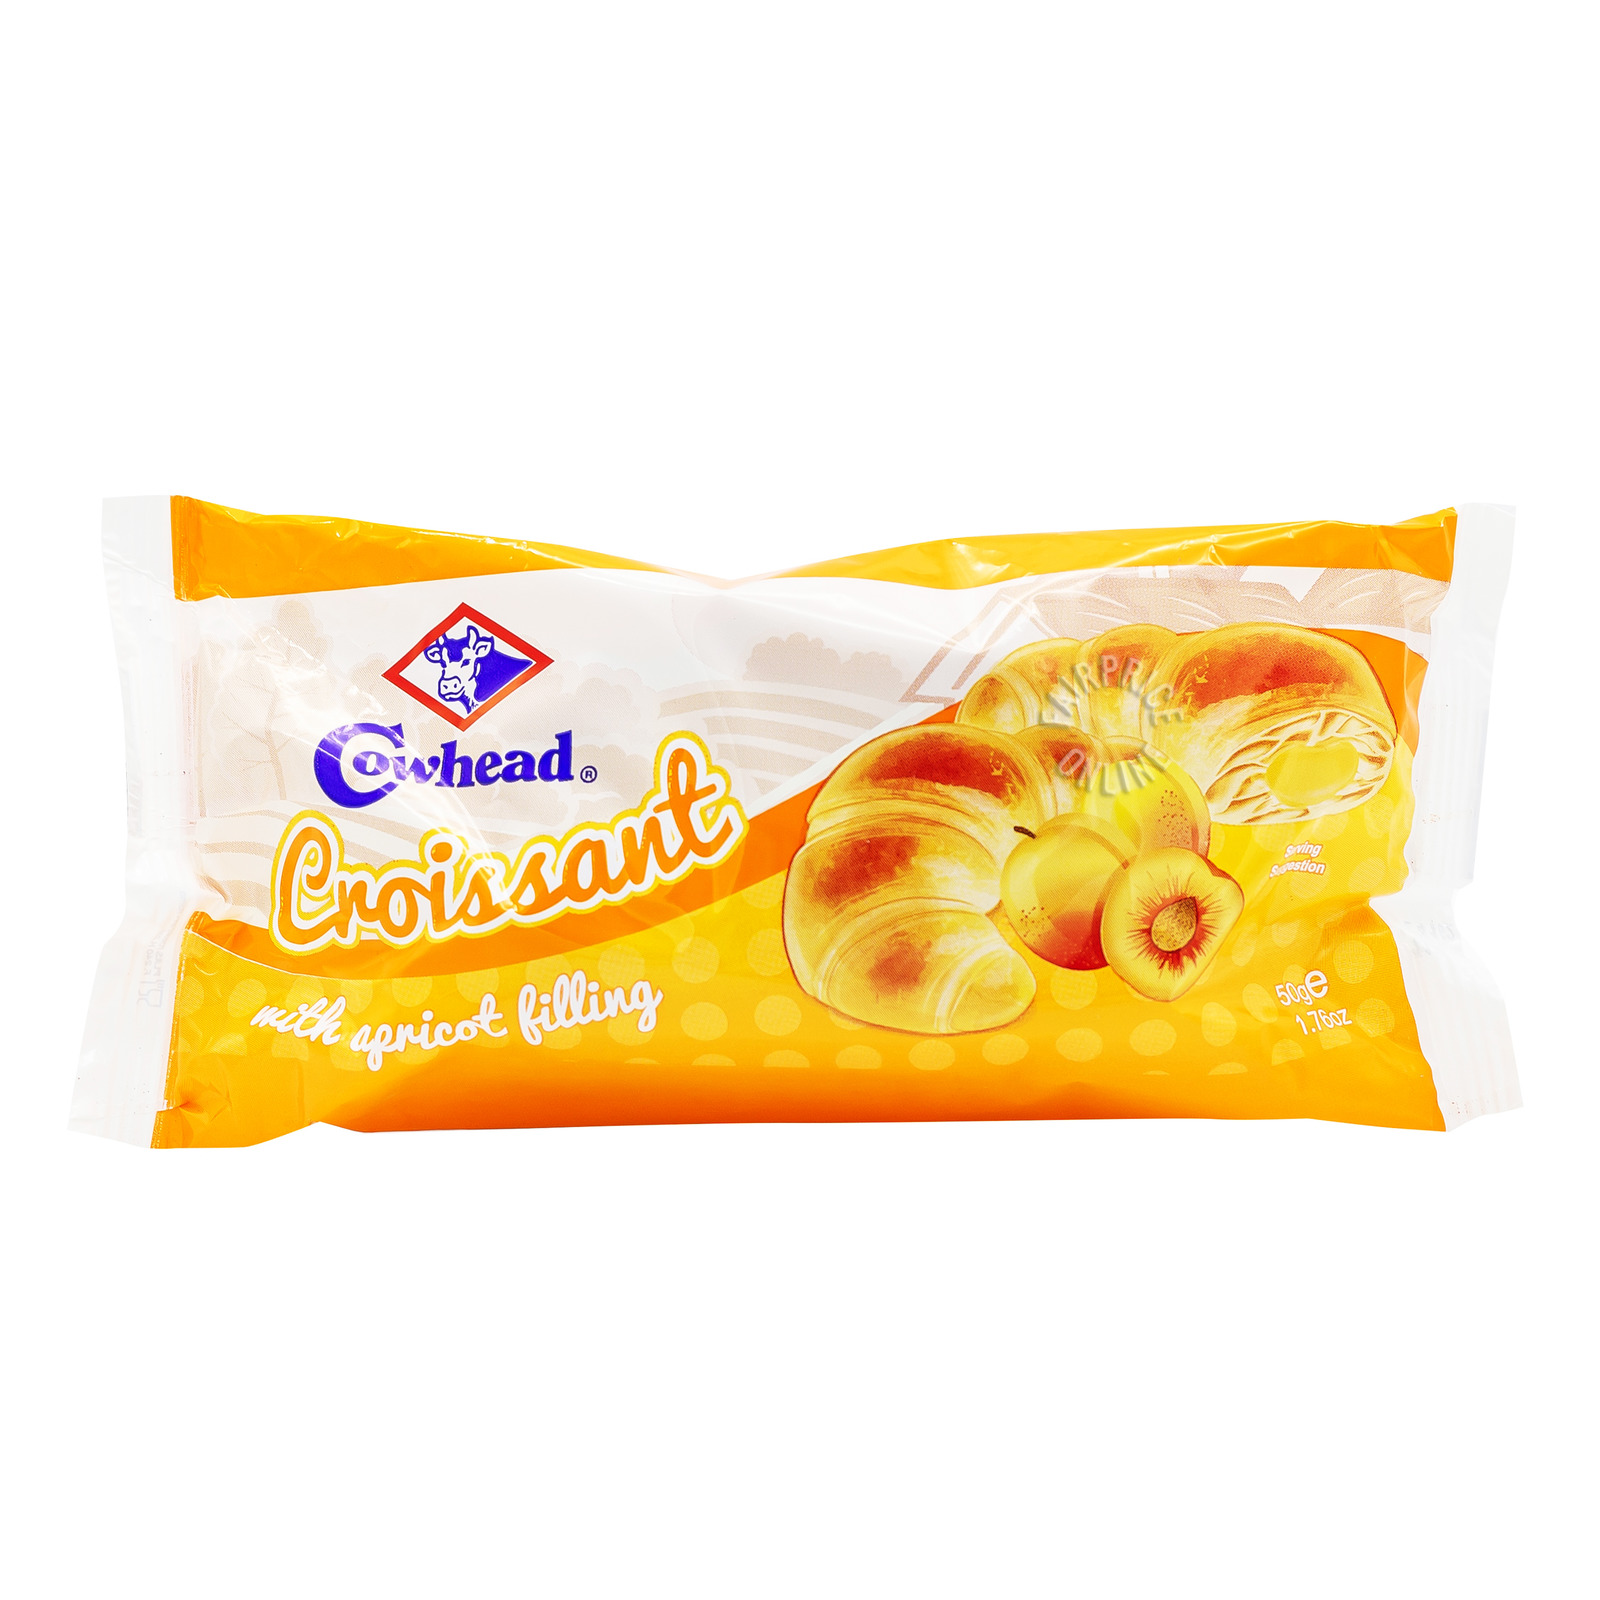 Cowhead Crossiant with Filling - Apricot